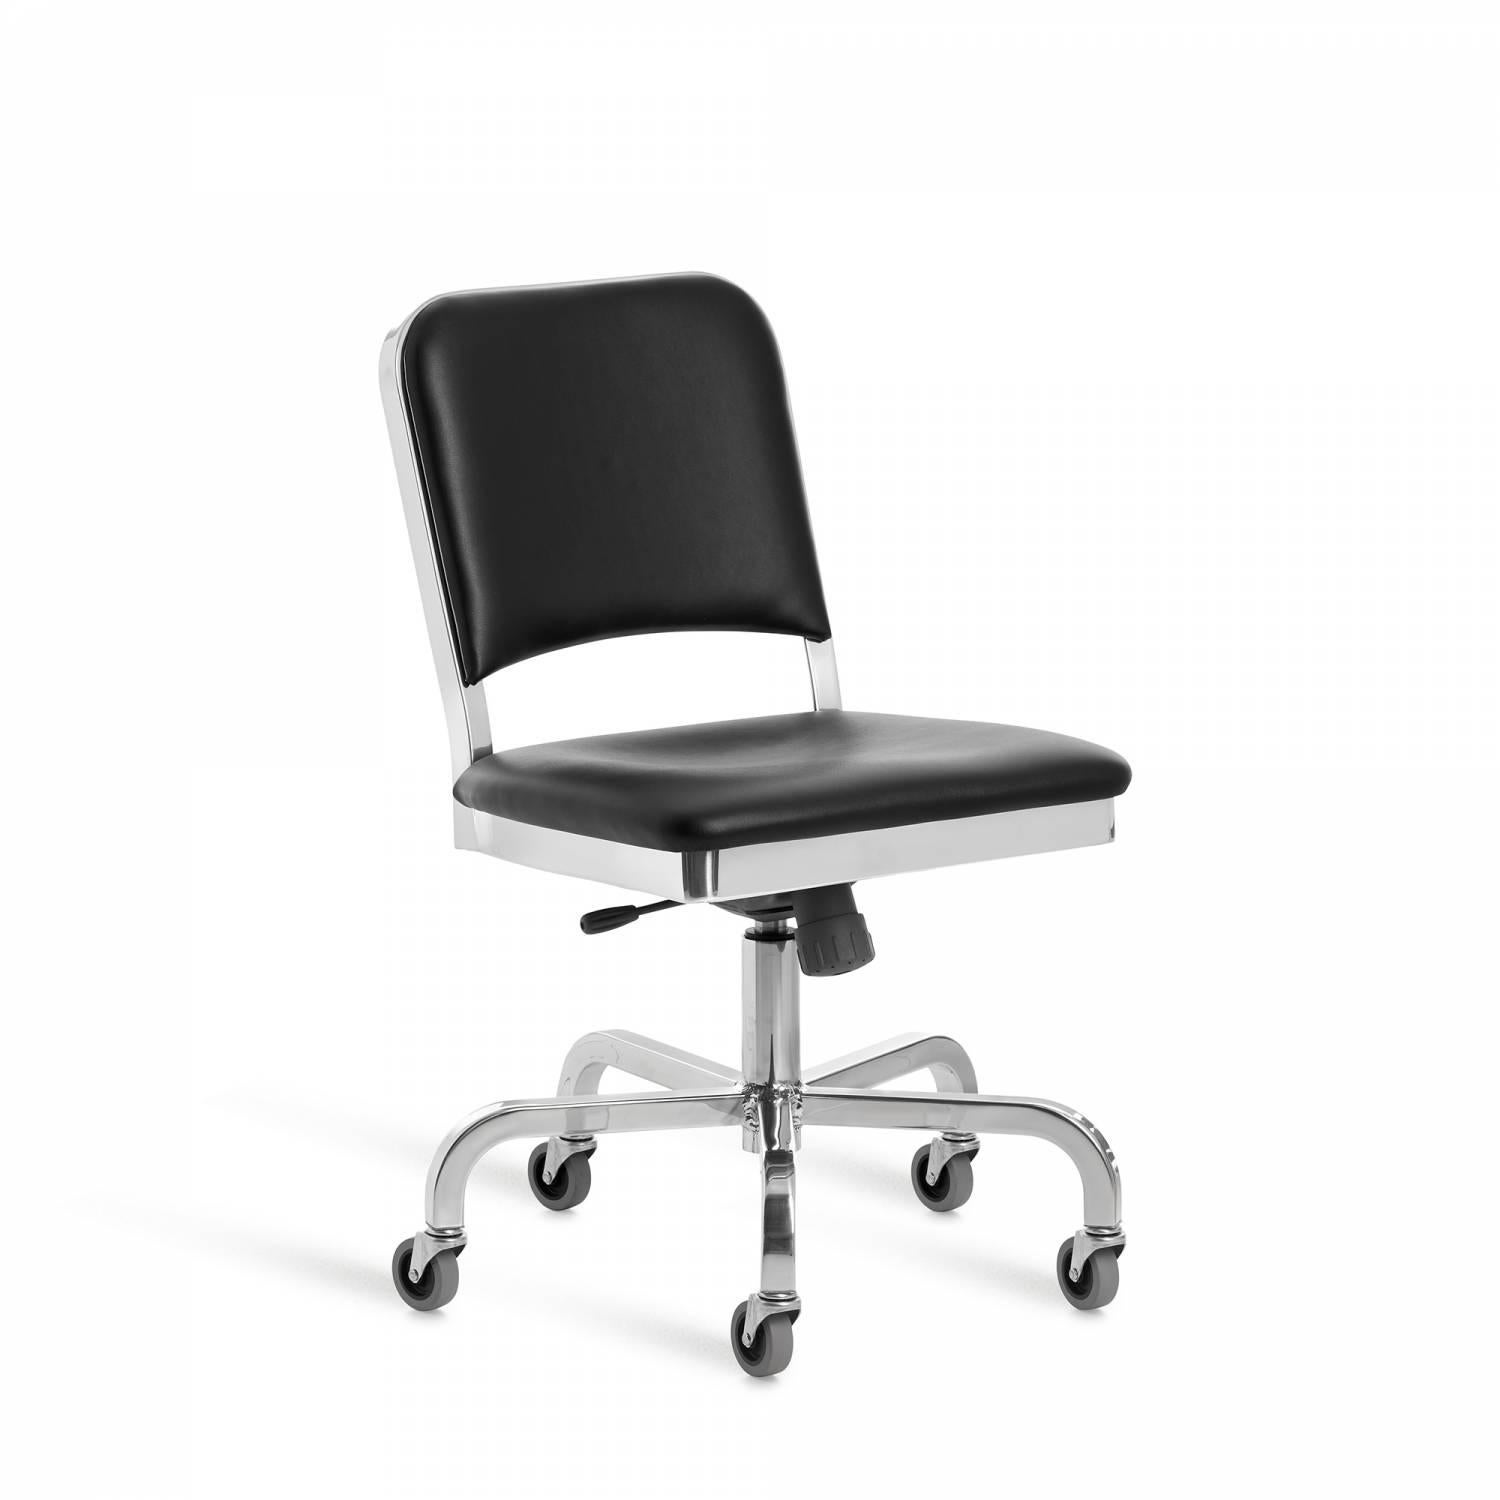 Famous Chair Emeco Navy Swivel Chair In Polished Aluminum And Black Upholstery By Us Navy